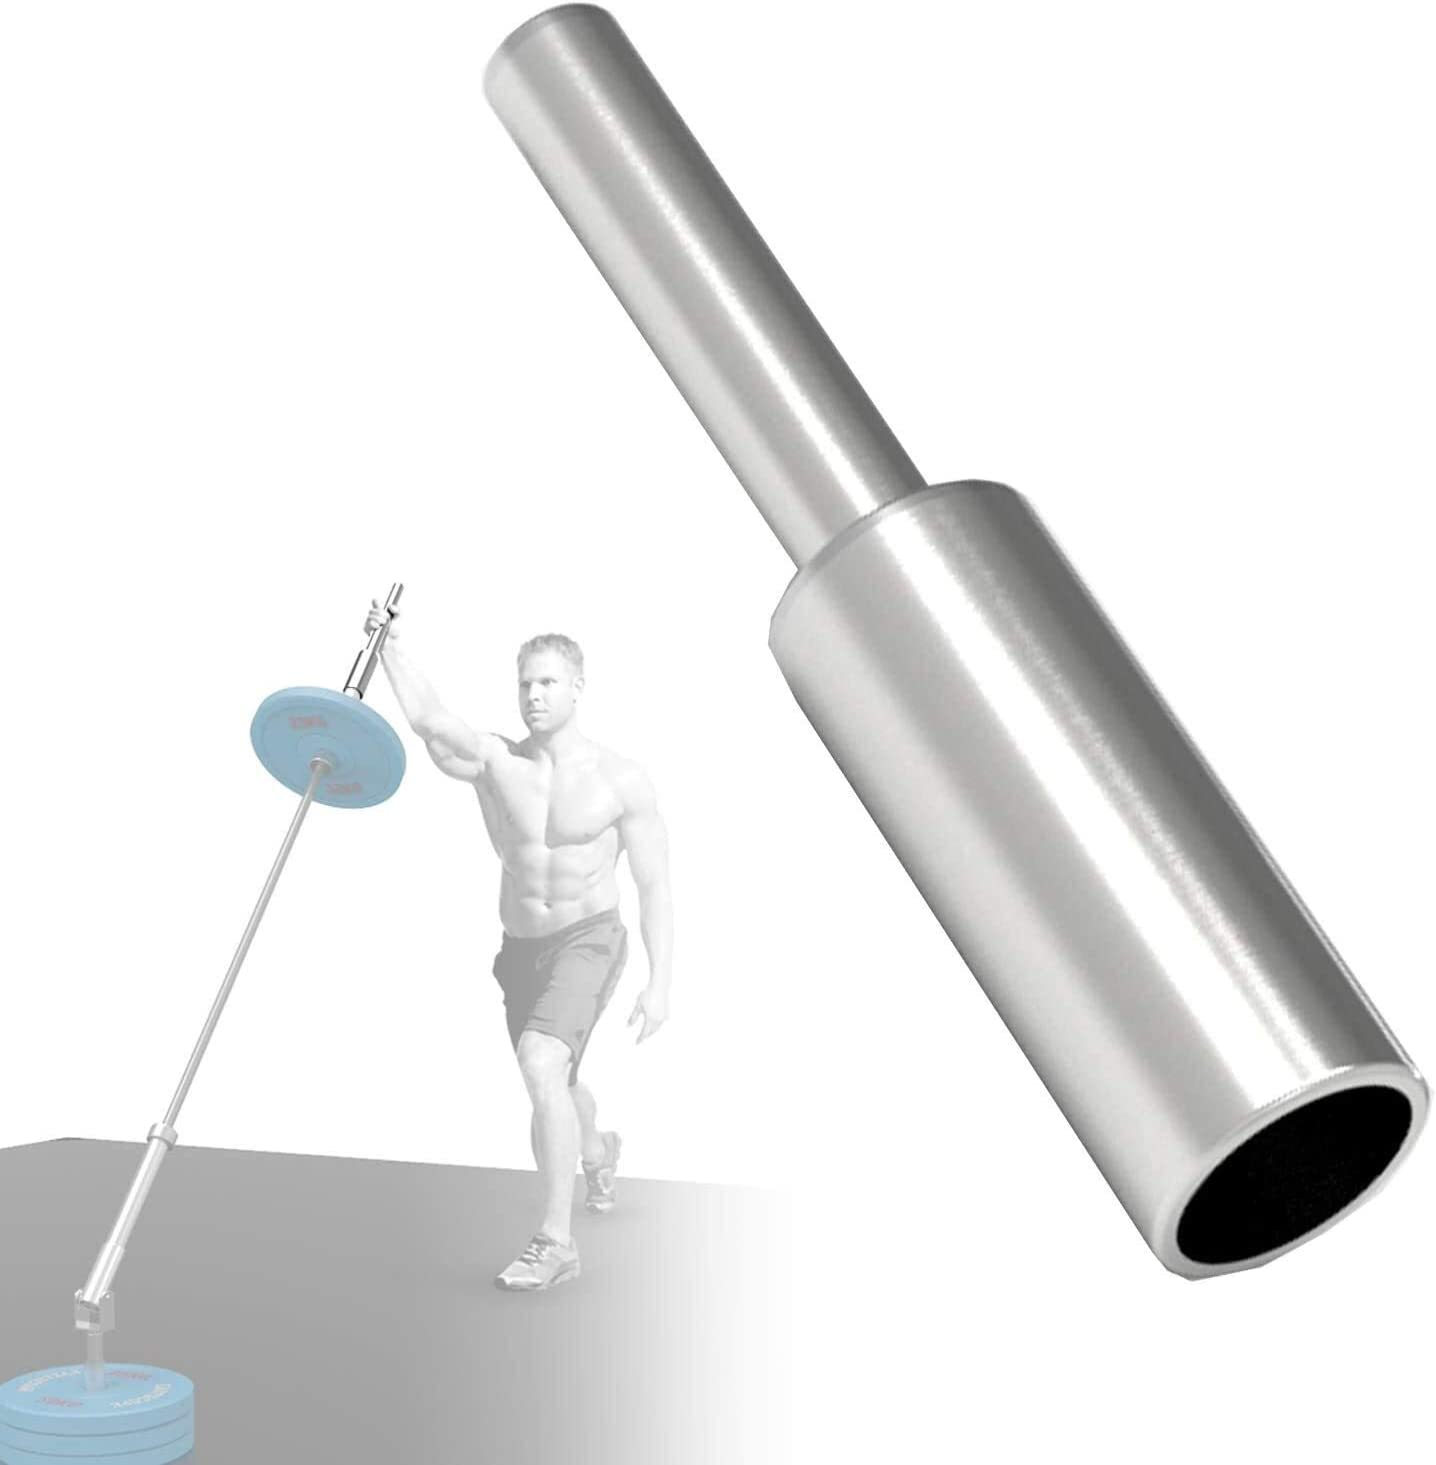 CLTWYZ Straight Japan's largest assortment Stainless Steel Memphis Mall Grip Handle Gym Back A Landmine